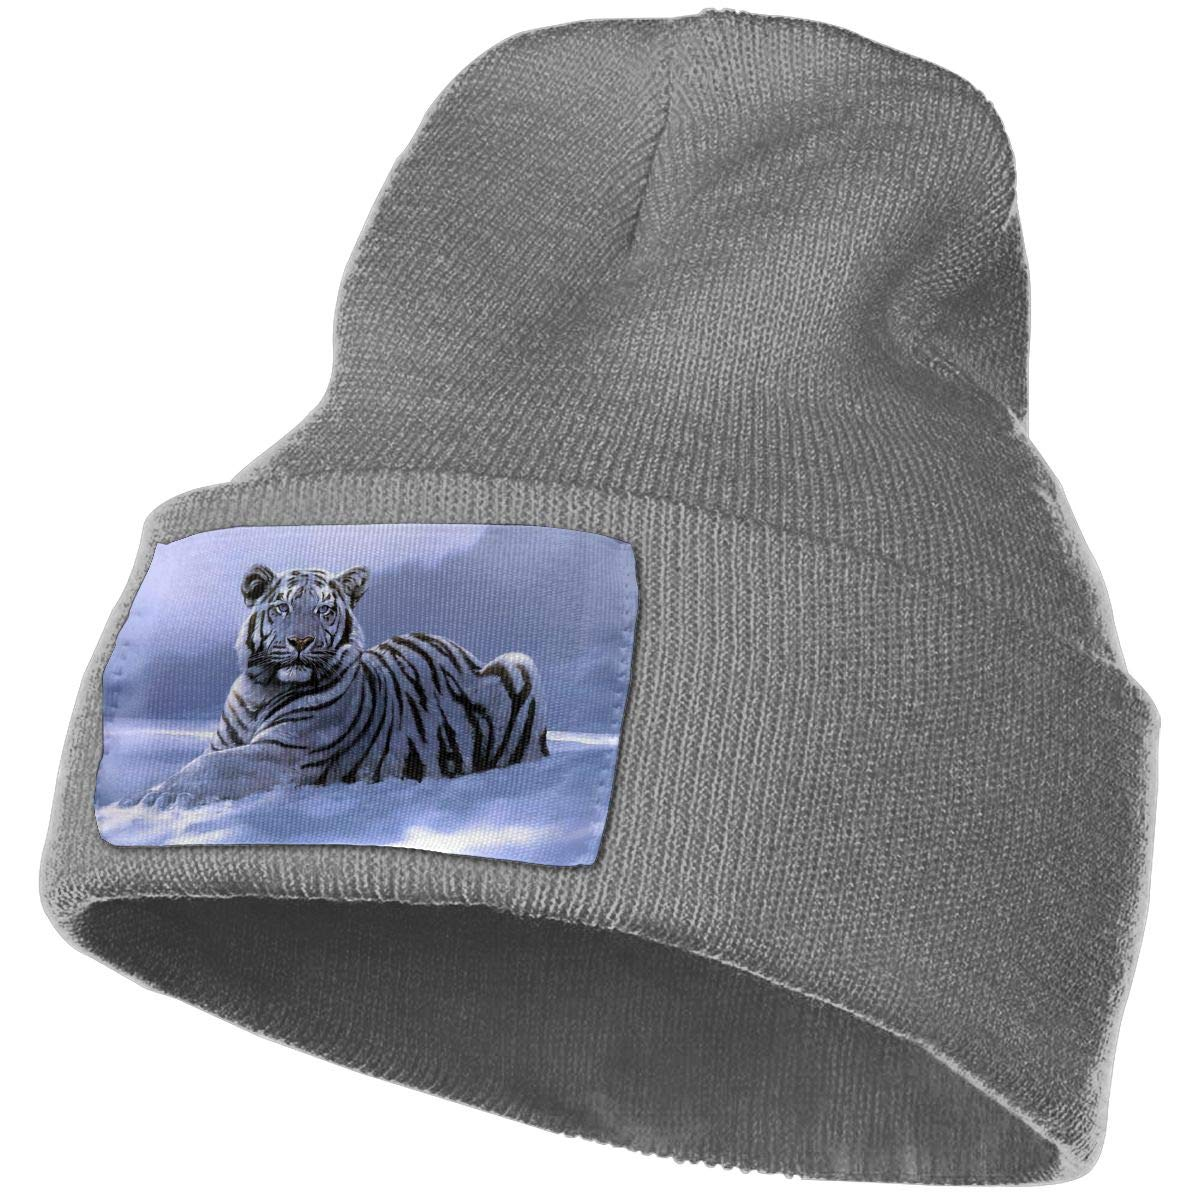 Deep Heather Beanie Hats Snow Tiger Knit Hedging Cap Slouchy Winter Warm Skull Caps For Men Womens